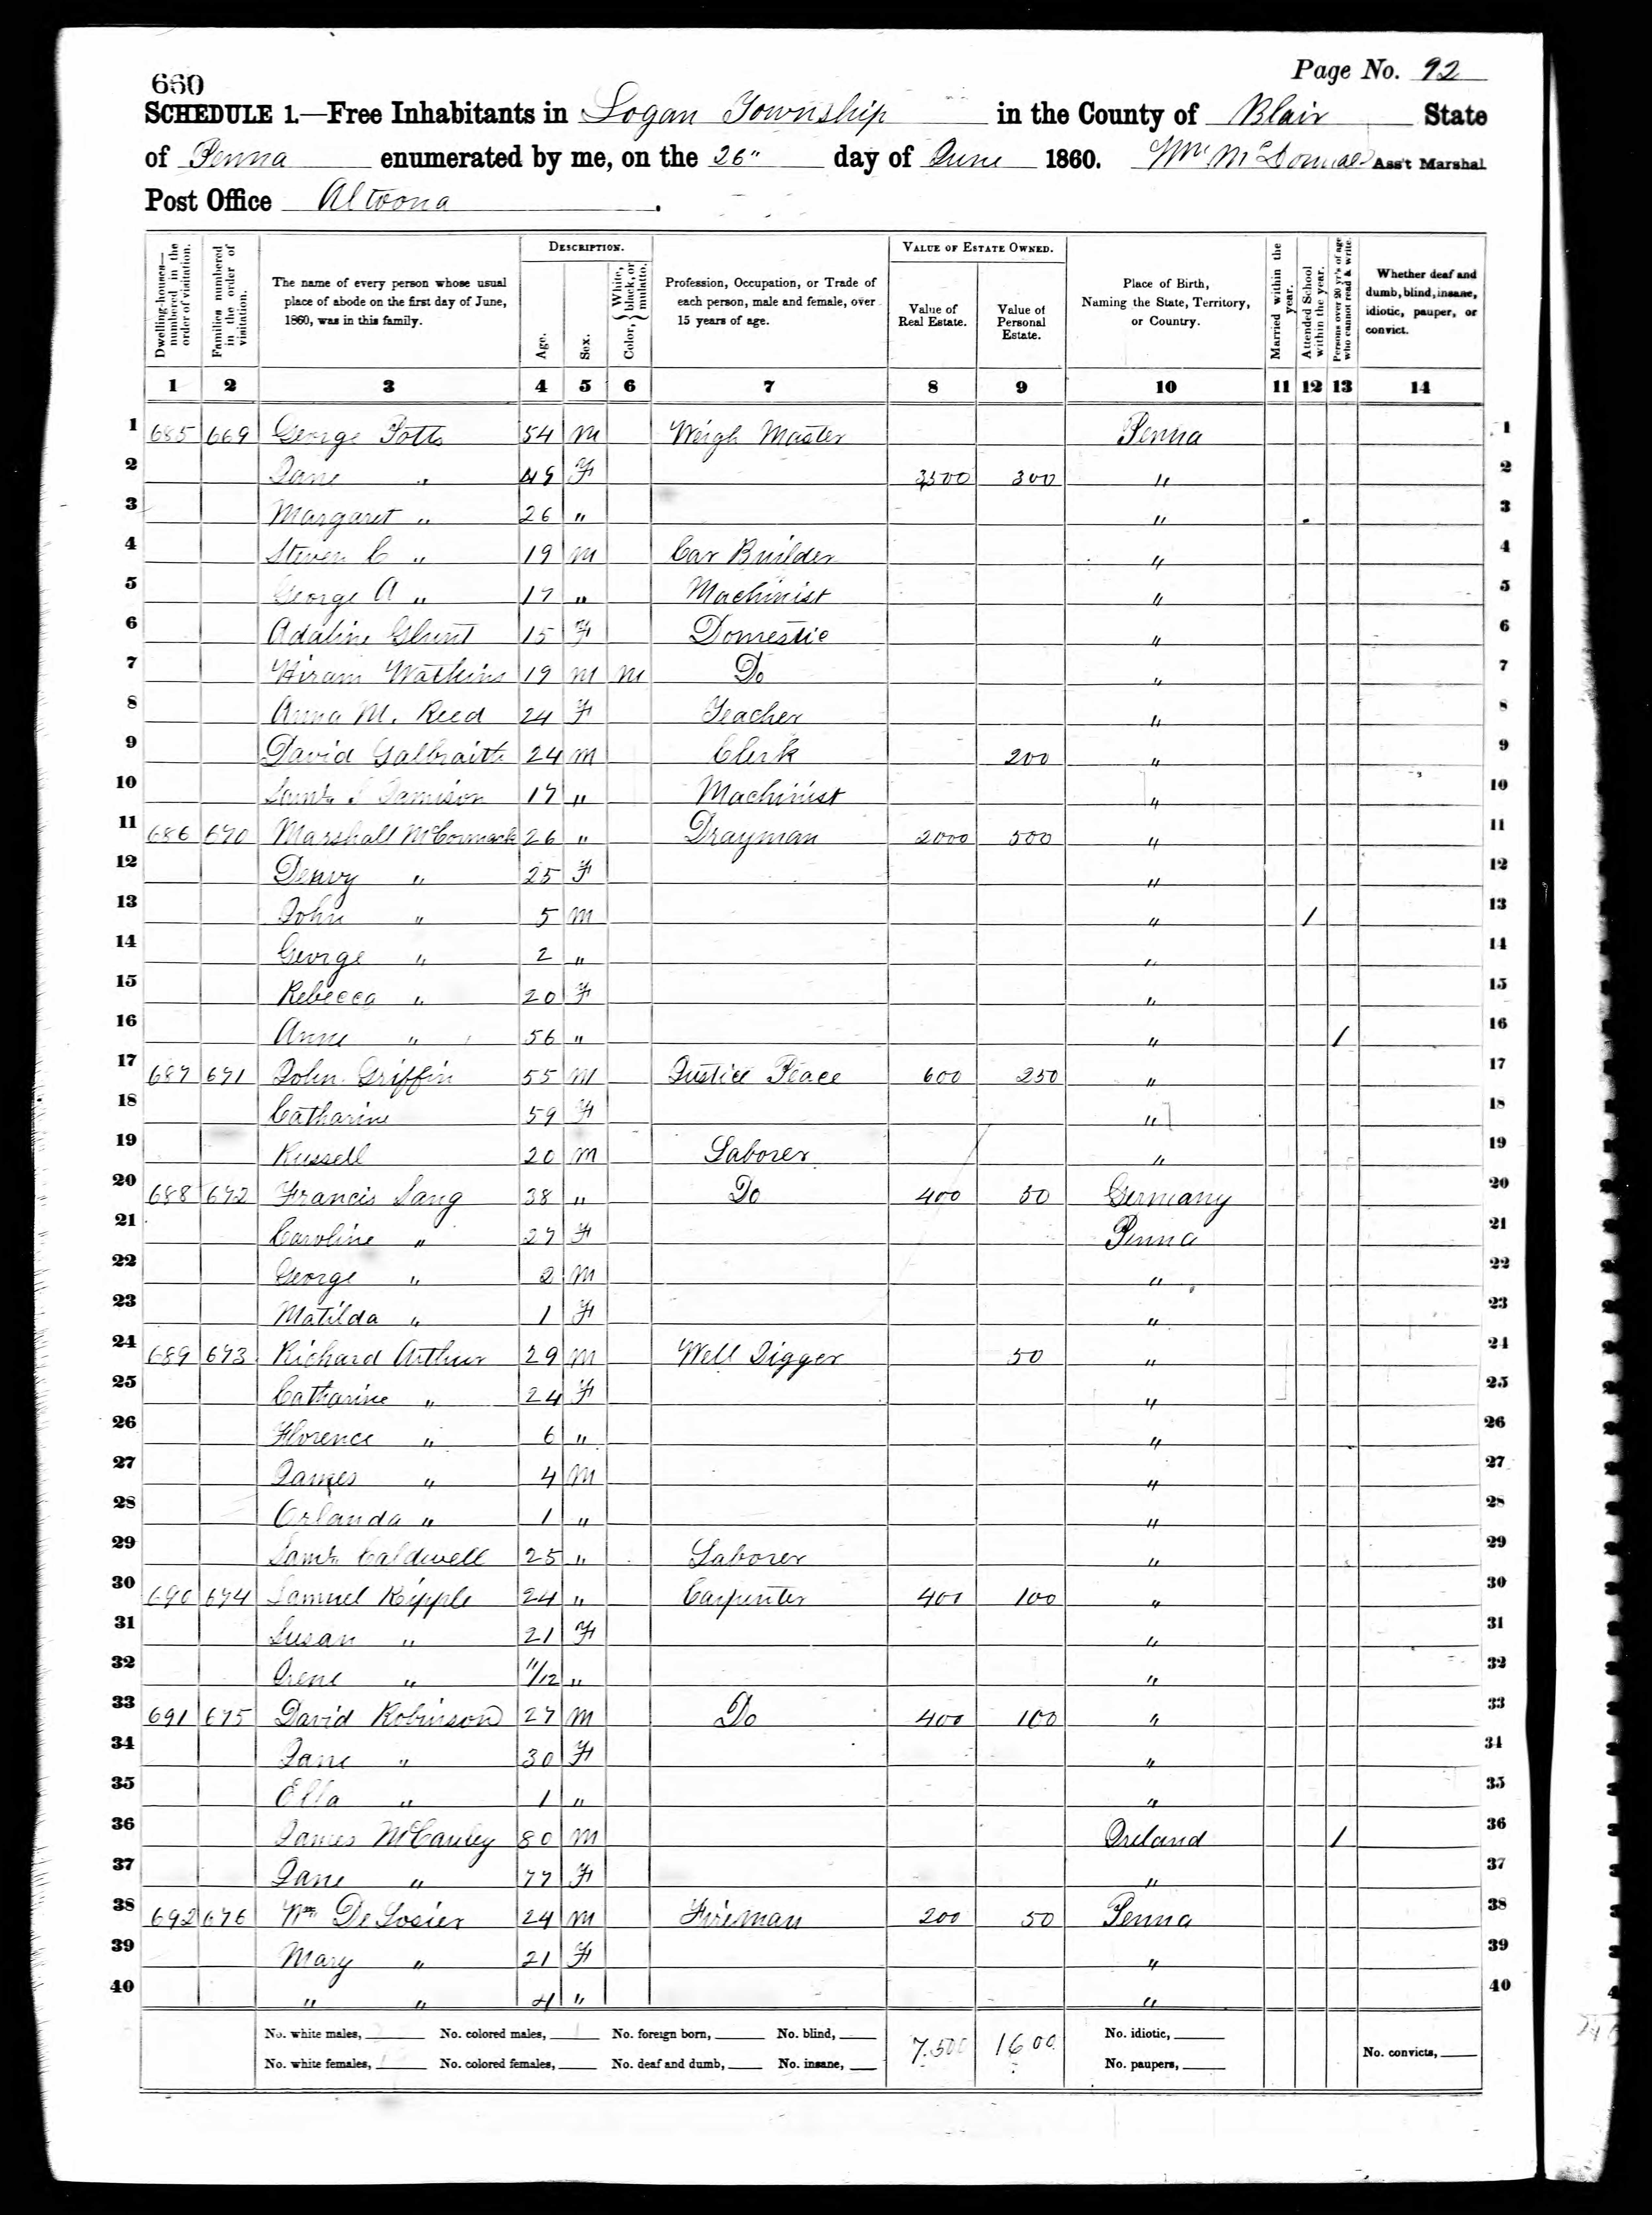 1860 Census record showing George Potts' residence and occupation as a weigh master.